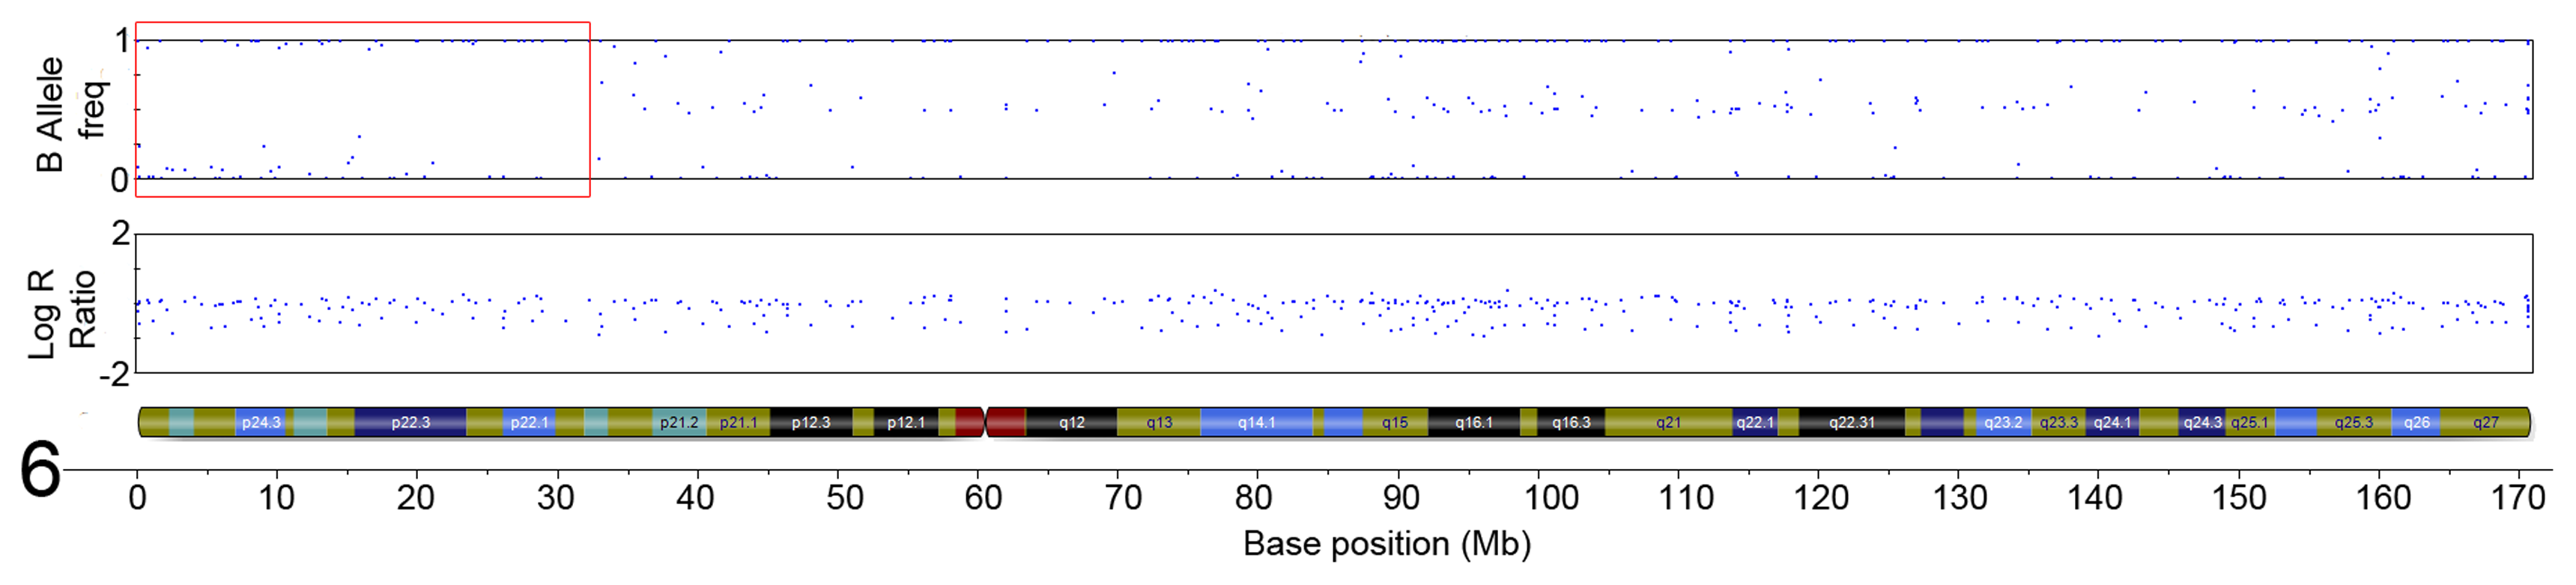 Region of CN-LoH in Chromosome 6 in sample SA2 (specific area illustrated by red box).